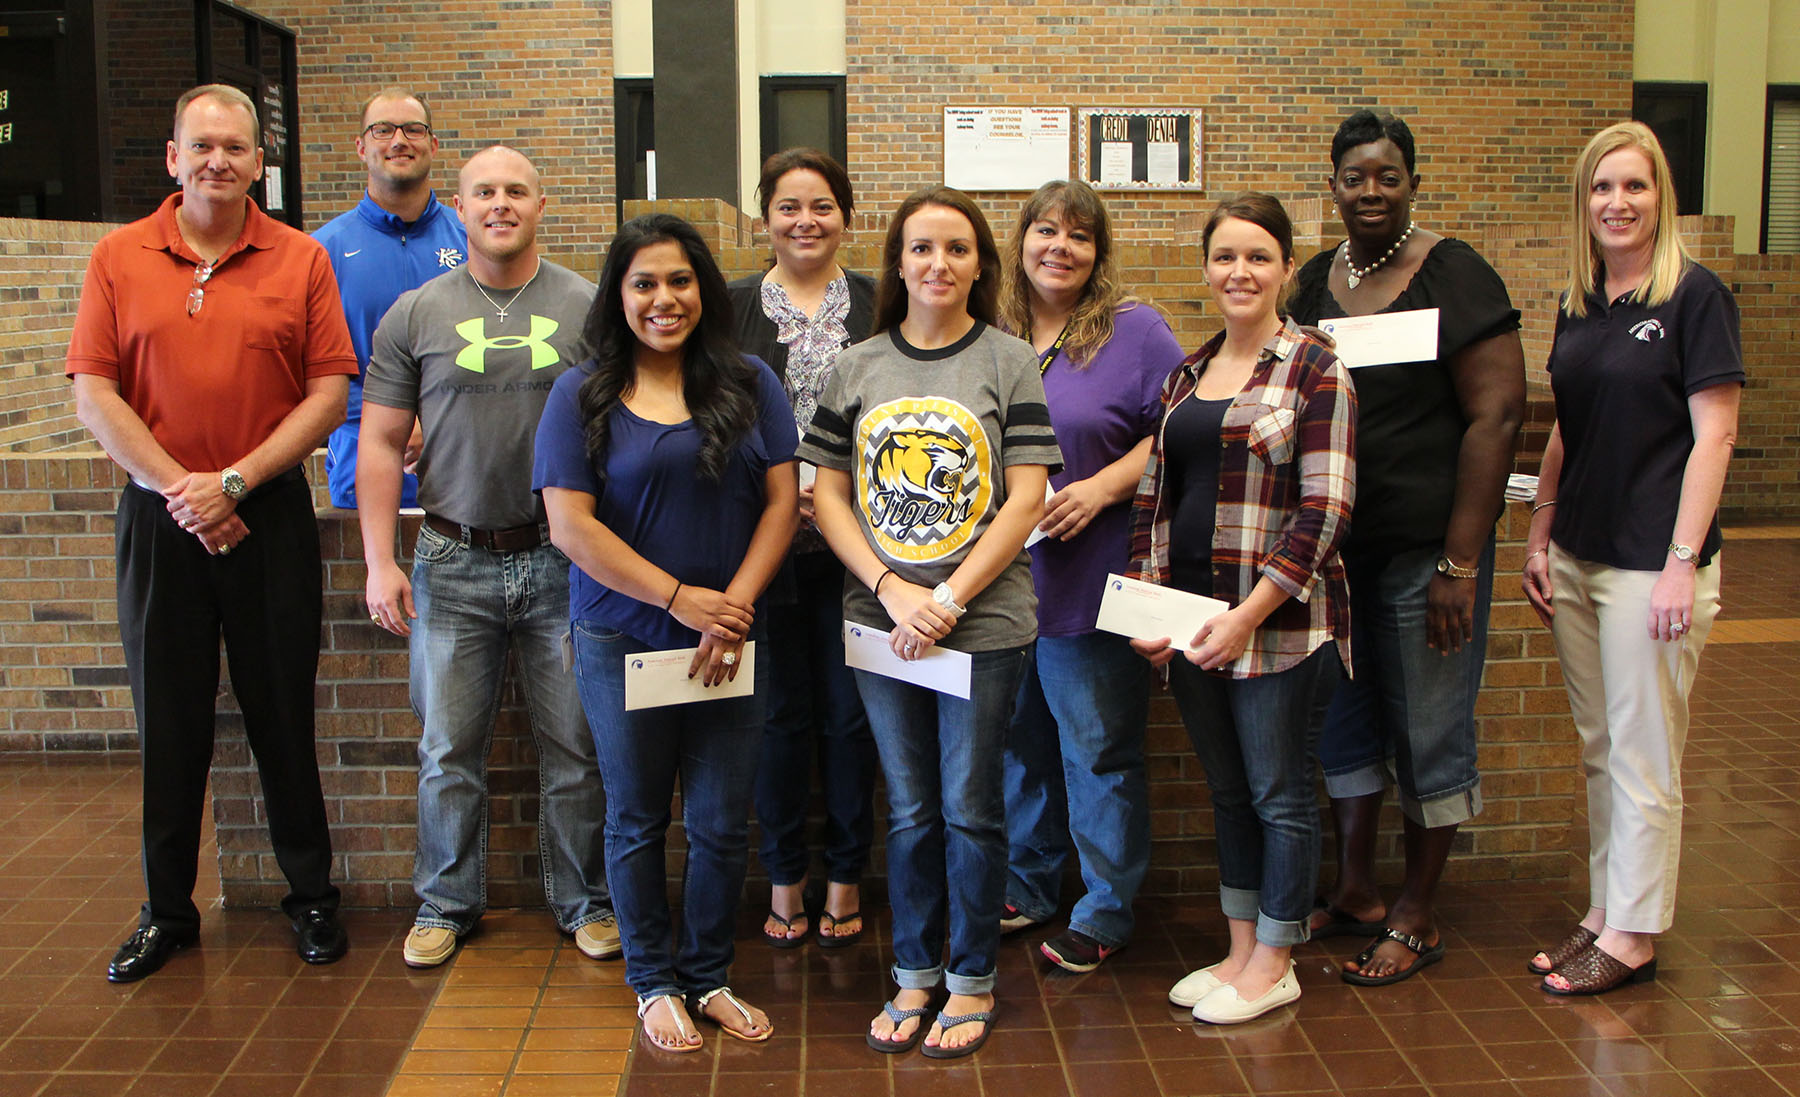 Mount Pleasant High School's First Year Teachers Received Grants From American National Bank. Pictured Are: Back Row (l-r): American National Bank President And CEO Brian Niblett, John Martin, Cody Russell, Angie Ayers, Sarah Fry, Shanta Lockett And Vikki Goates, ANB Executive VP And CFO. Front Row: (l-r); Noemi Ramirez, Brittney Crawford And Brittny Bobo. Not Pictured Katherine Dean, Bretteny Moore And Angela Priefert.